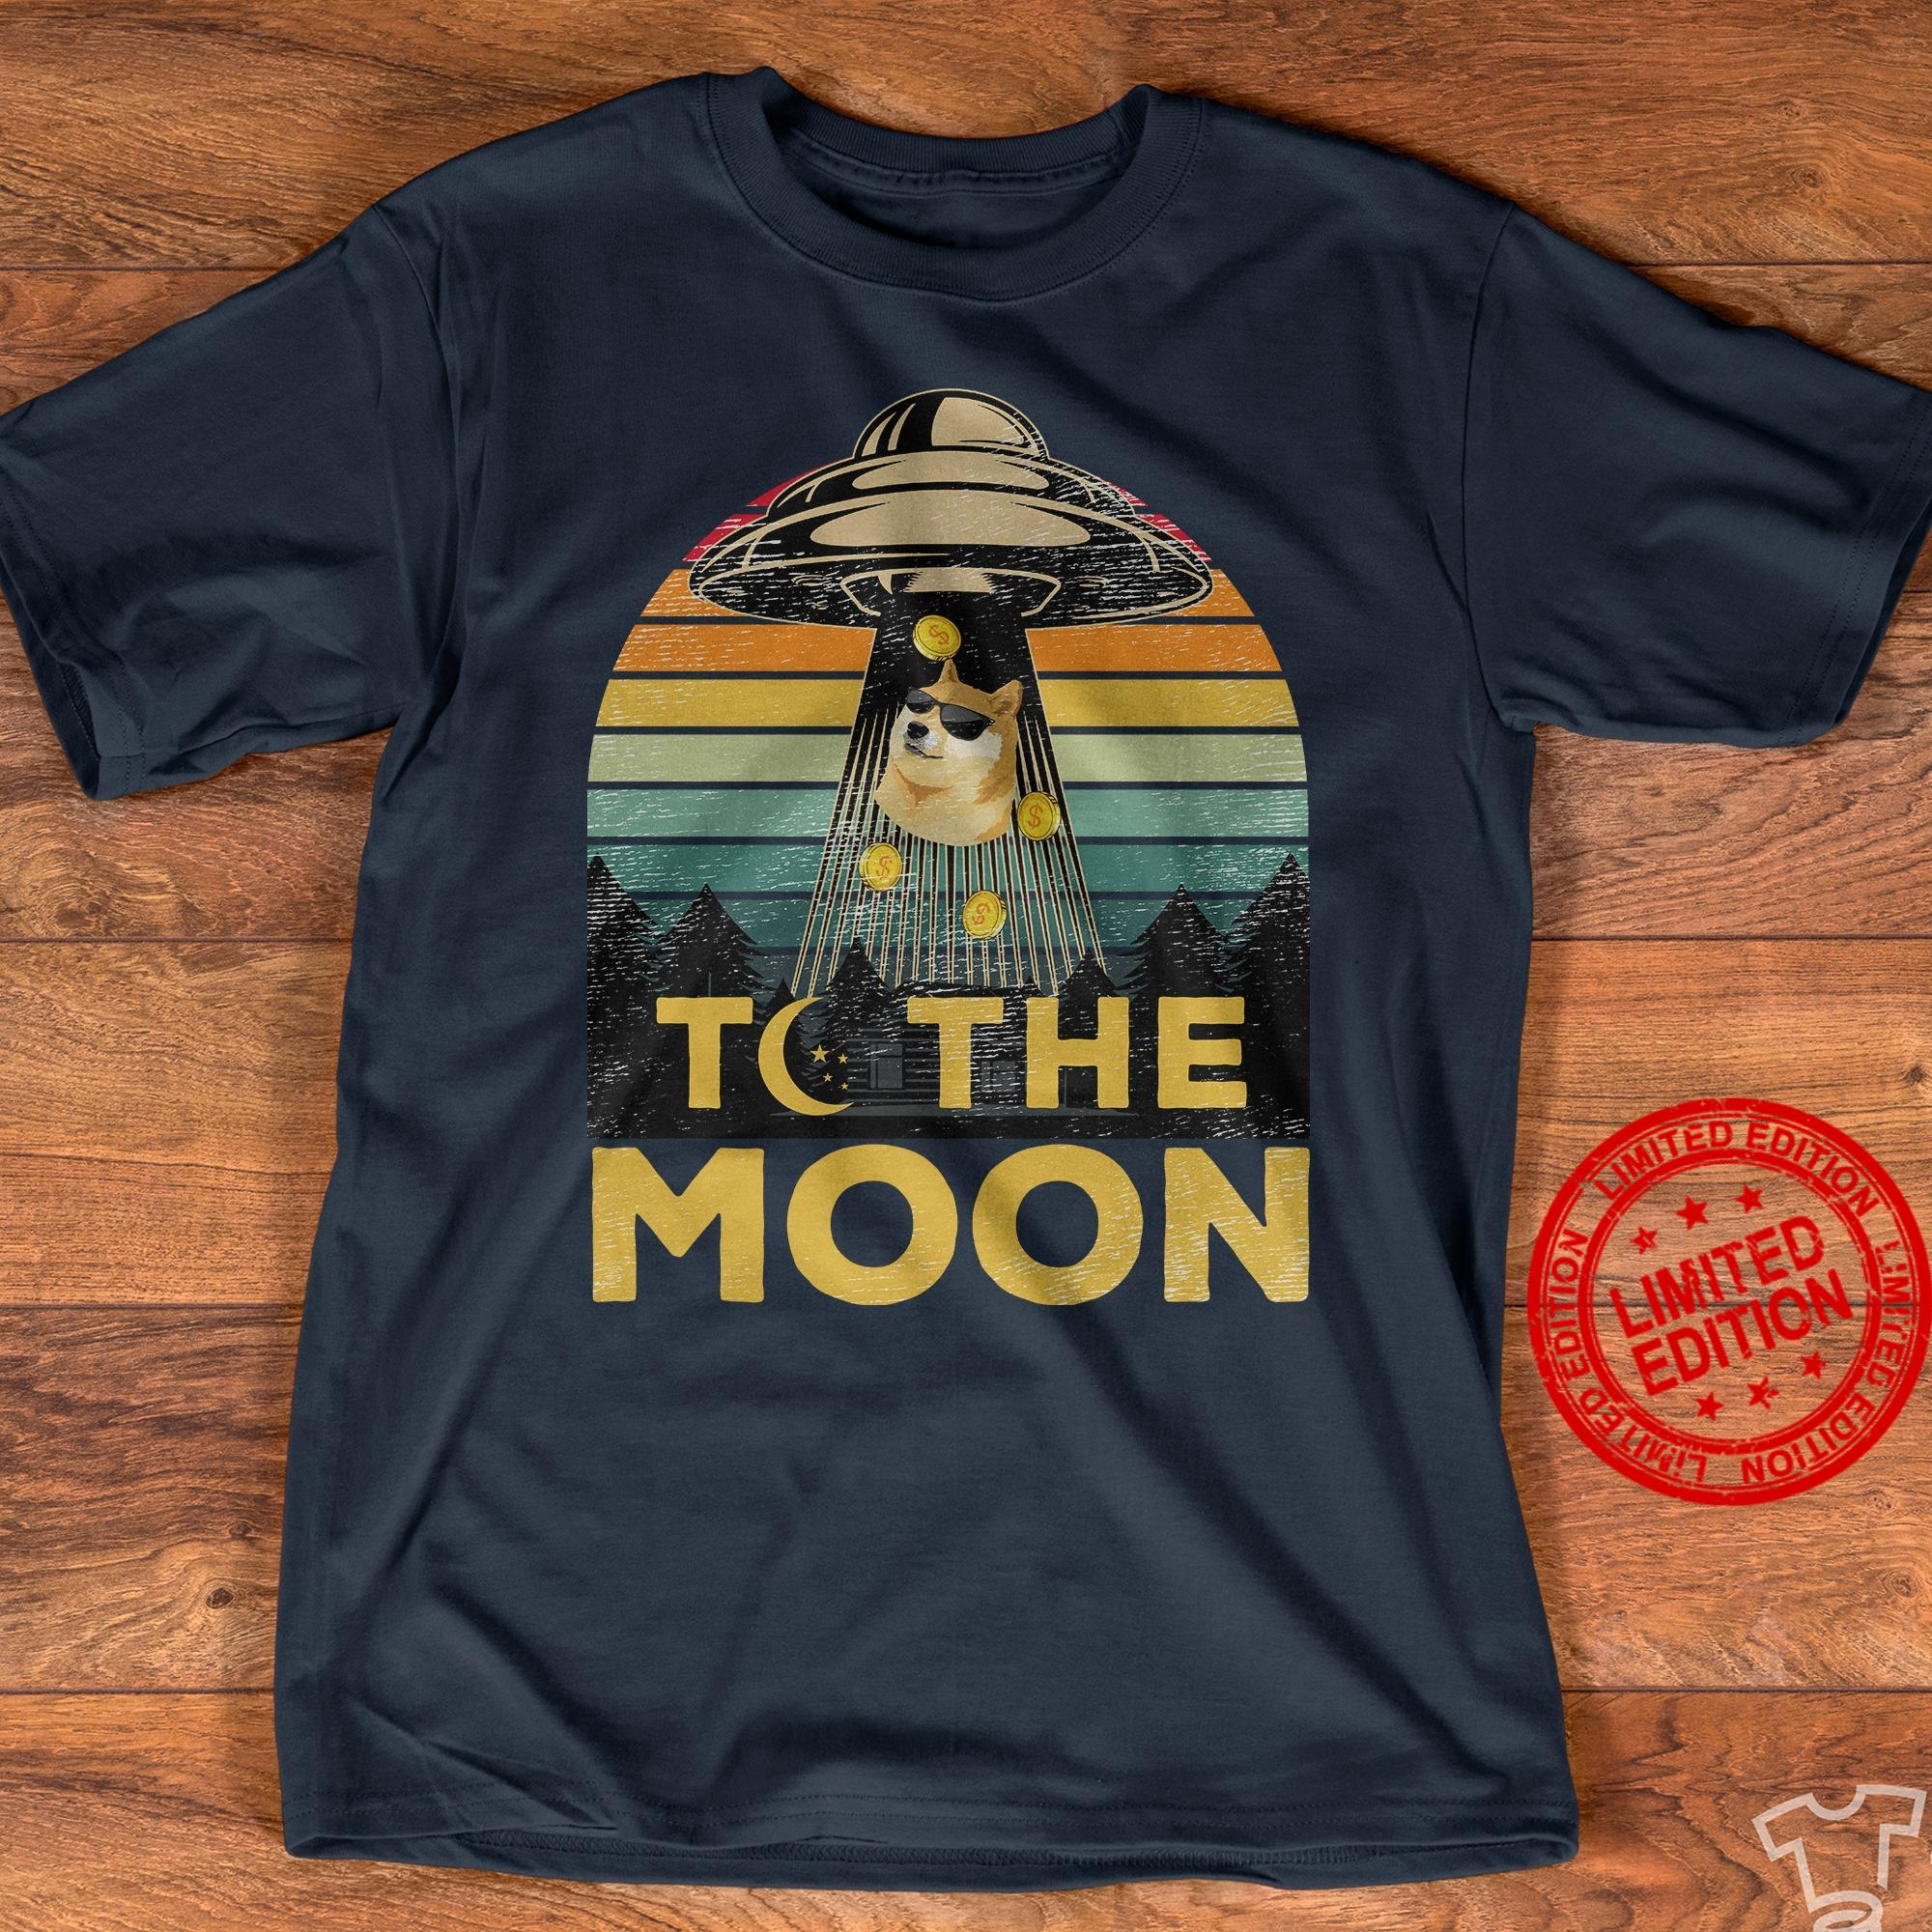 To The Moon Shirt